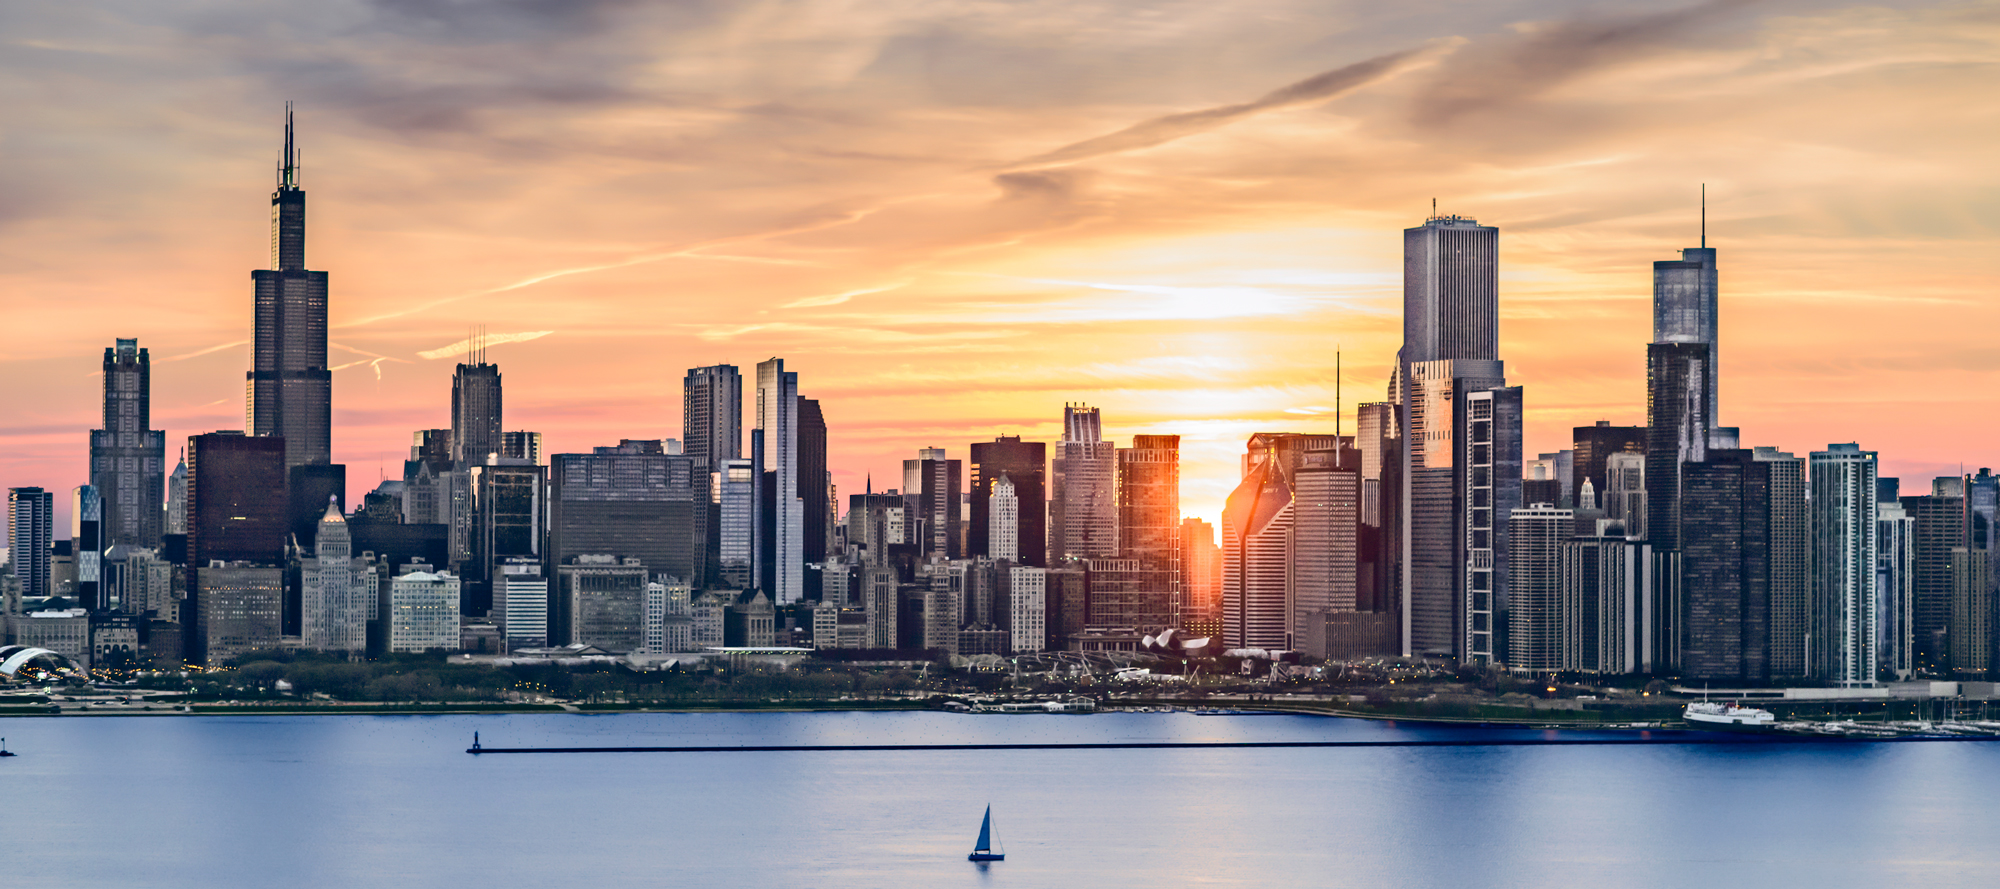 Chicago Sunrise (c) Tigerhill Studio - All Rights Reserved